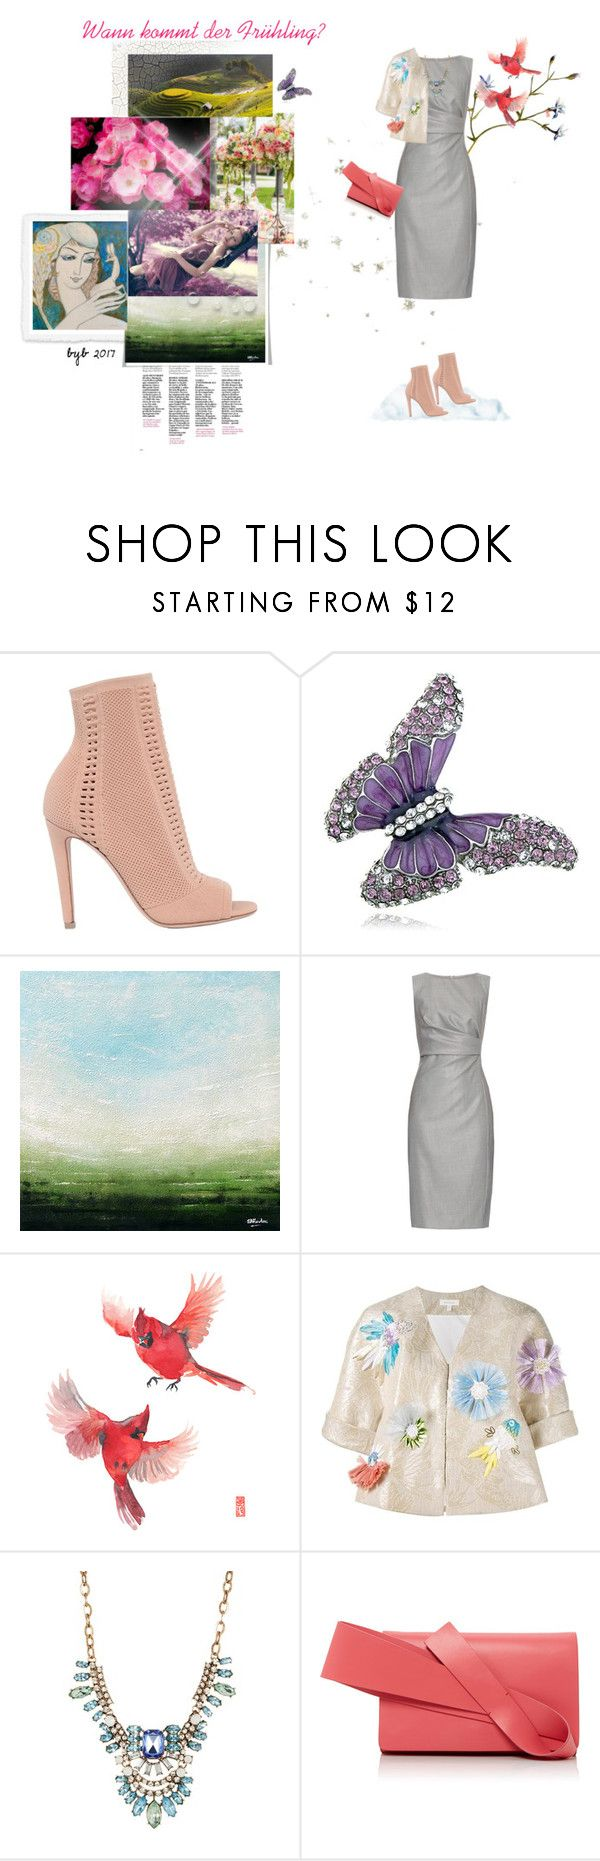 """""""Wann kommt der Frühling?"""" by hannover ❤ liked on Polyvore featuring Gianvito Rossi, MaxMara, Delpozo and Spring Street"""